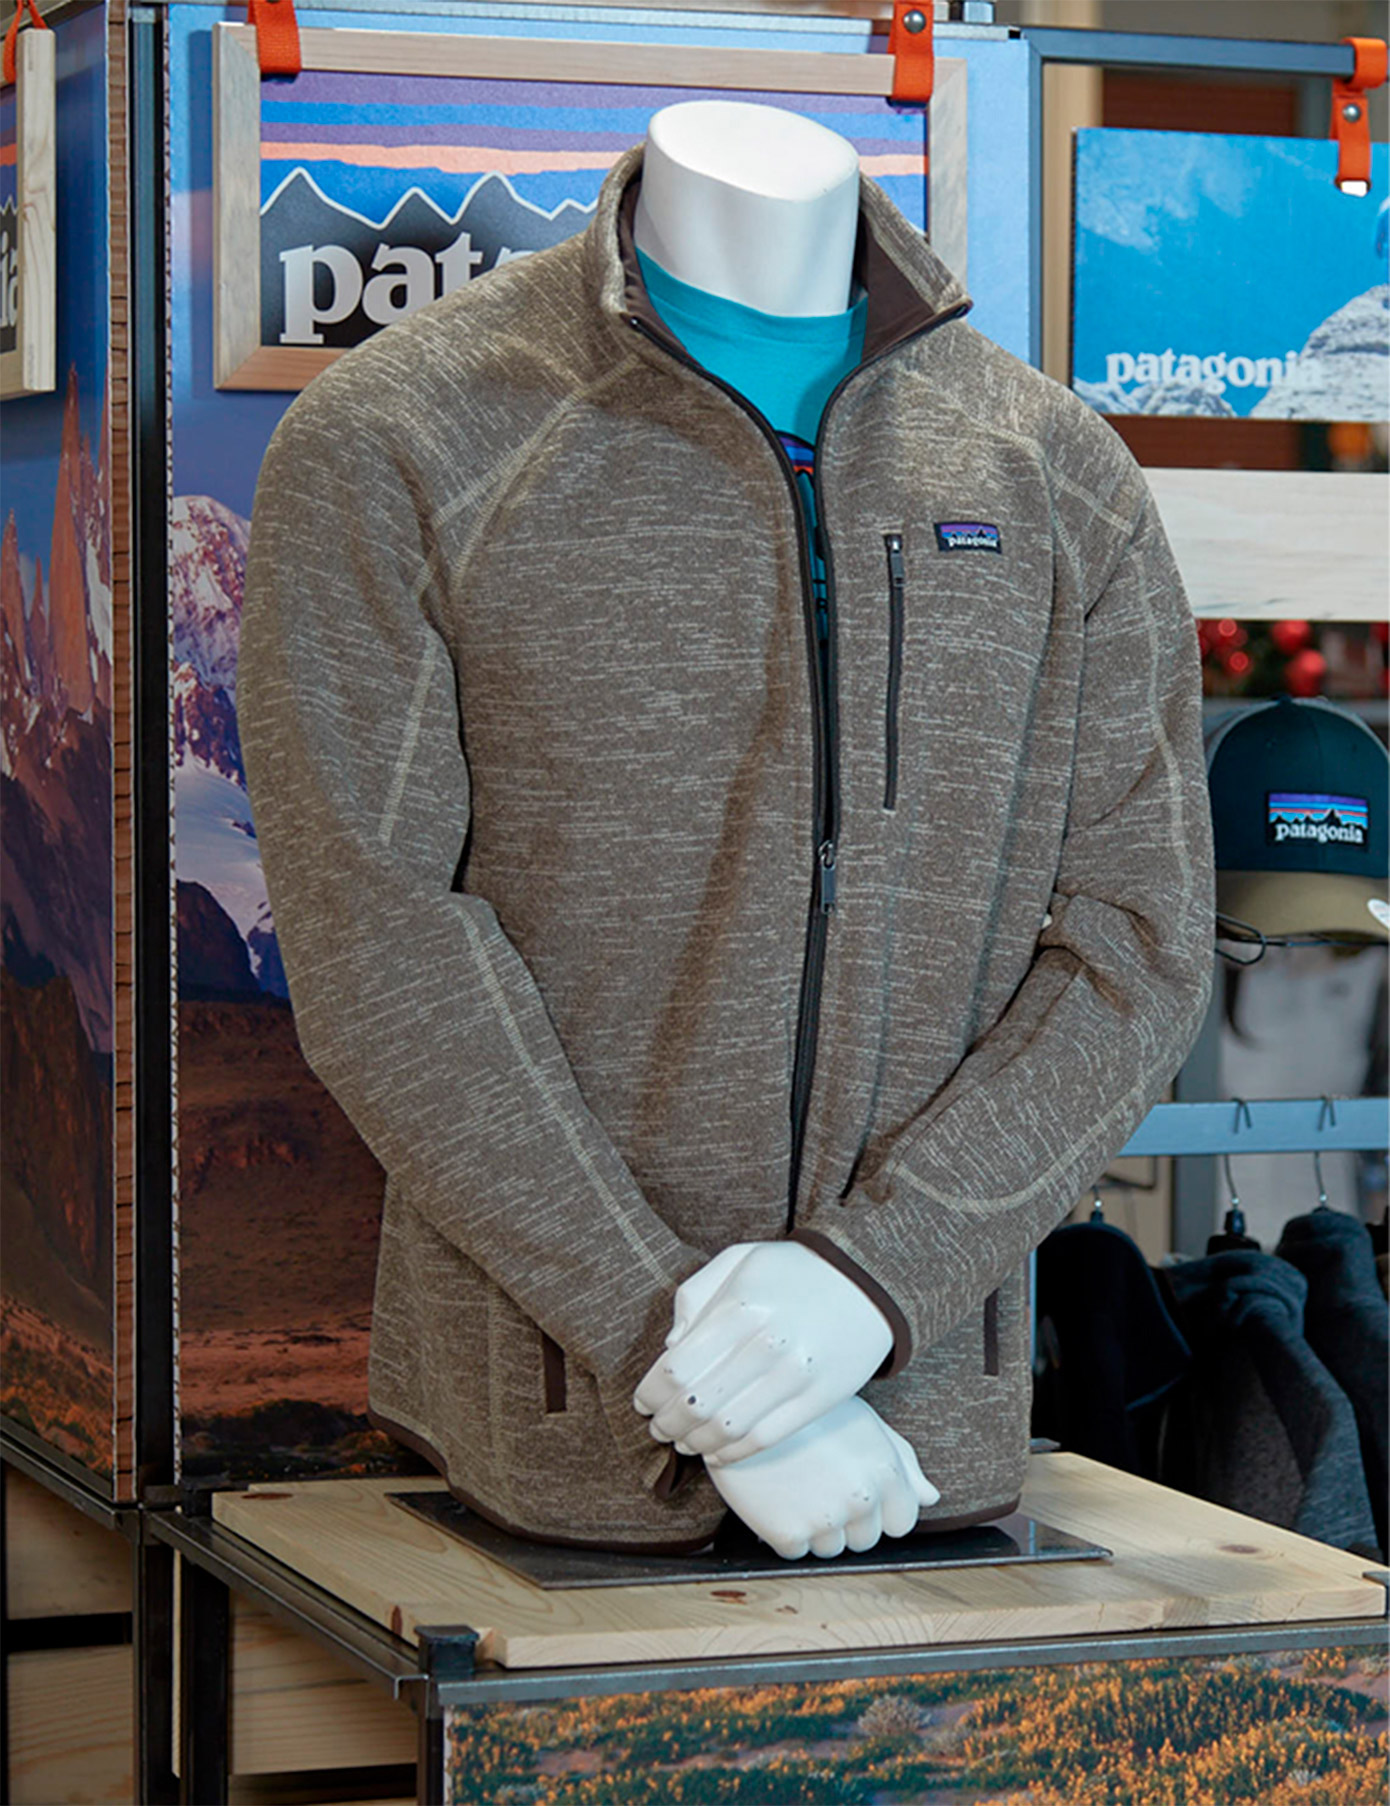 A closer view of one of the mannequins used in The Bernard Group's custom and inviting Patagonia display.